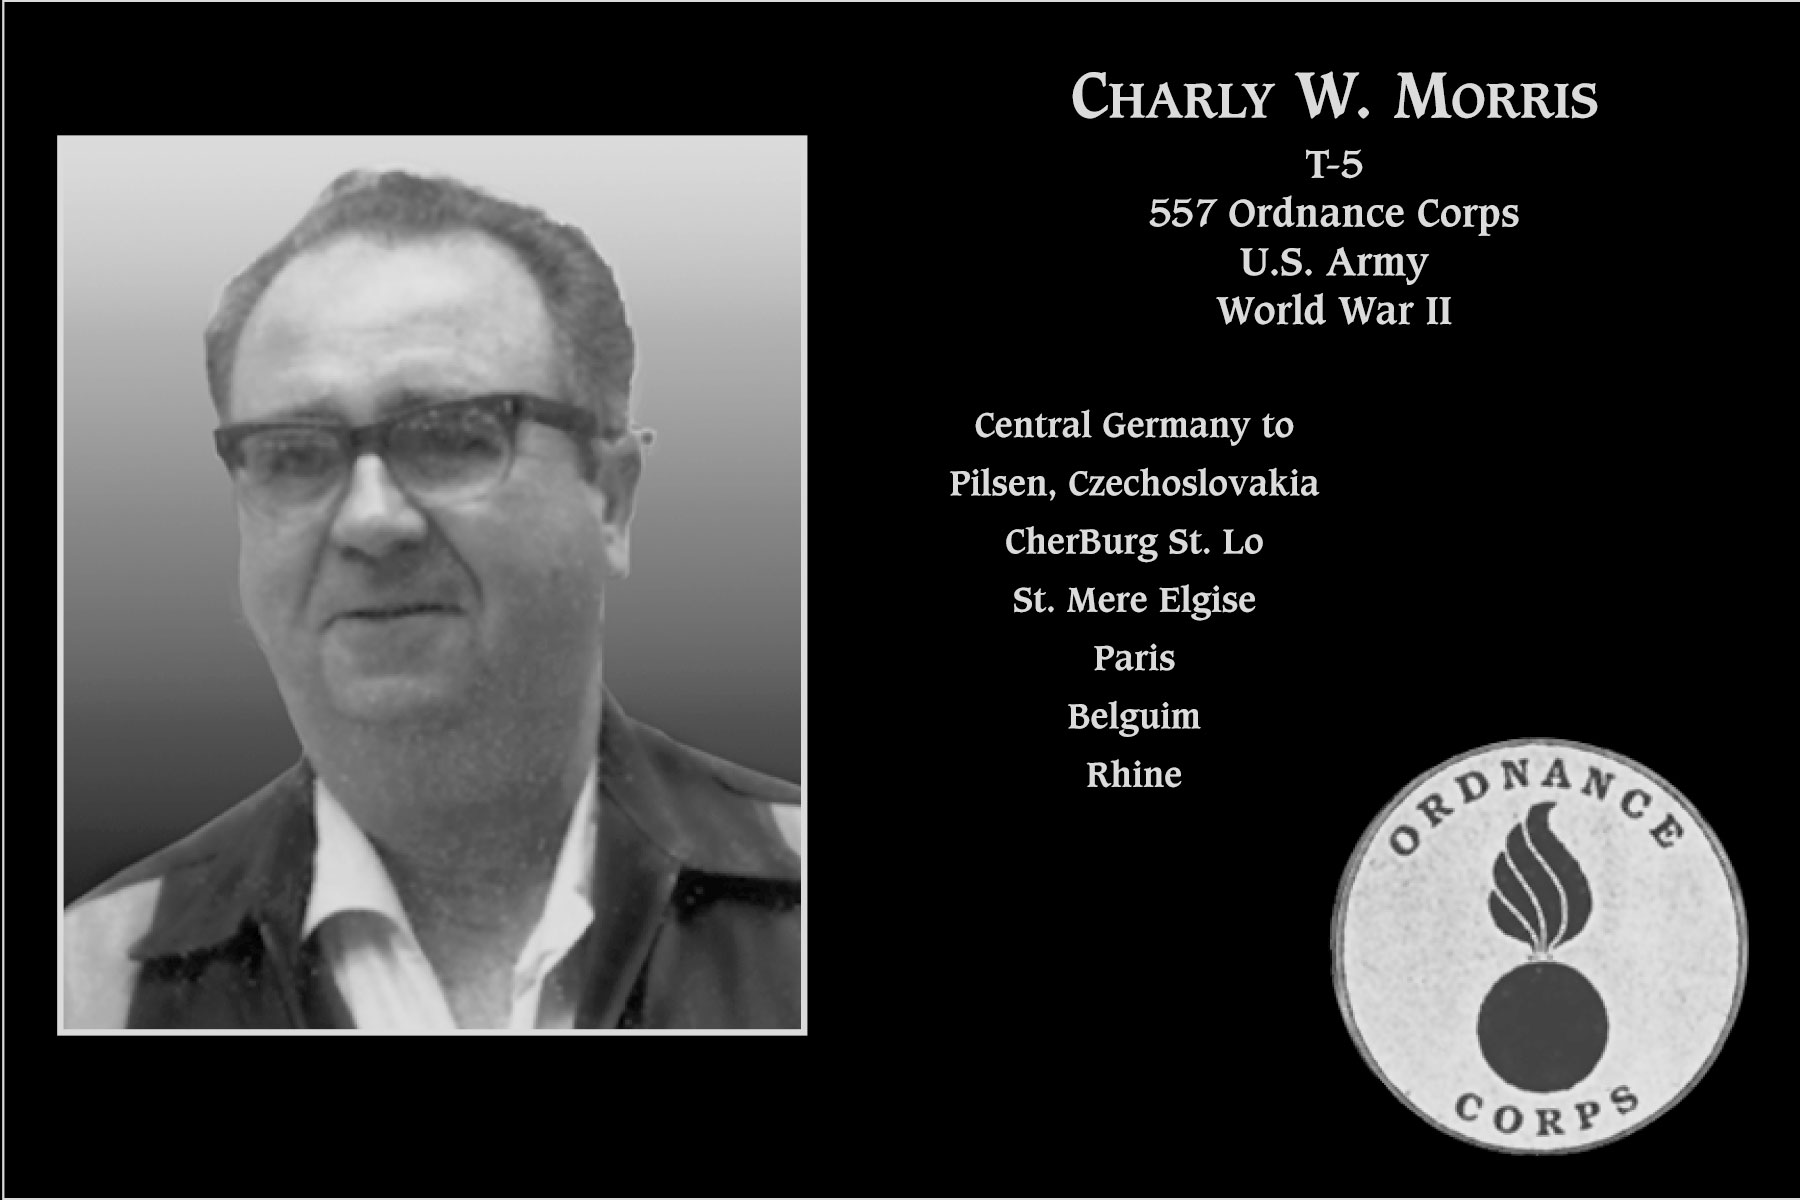 Charly W. Morris